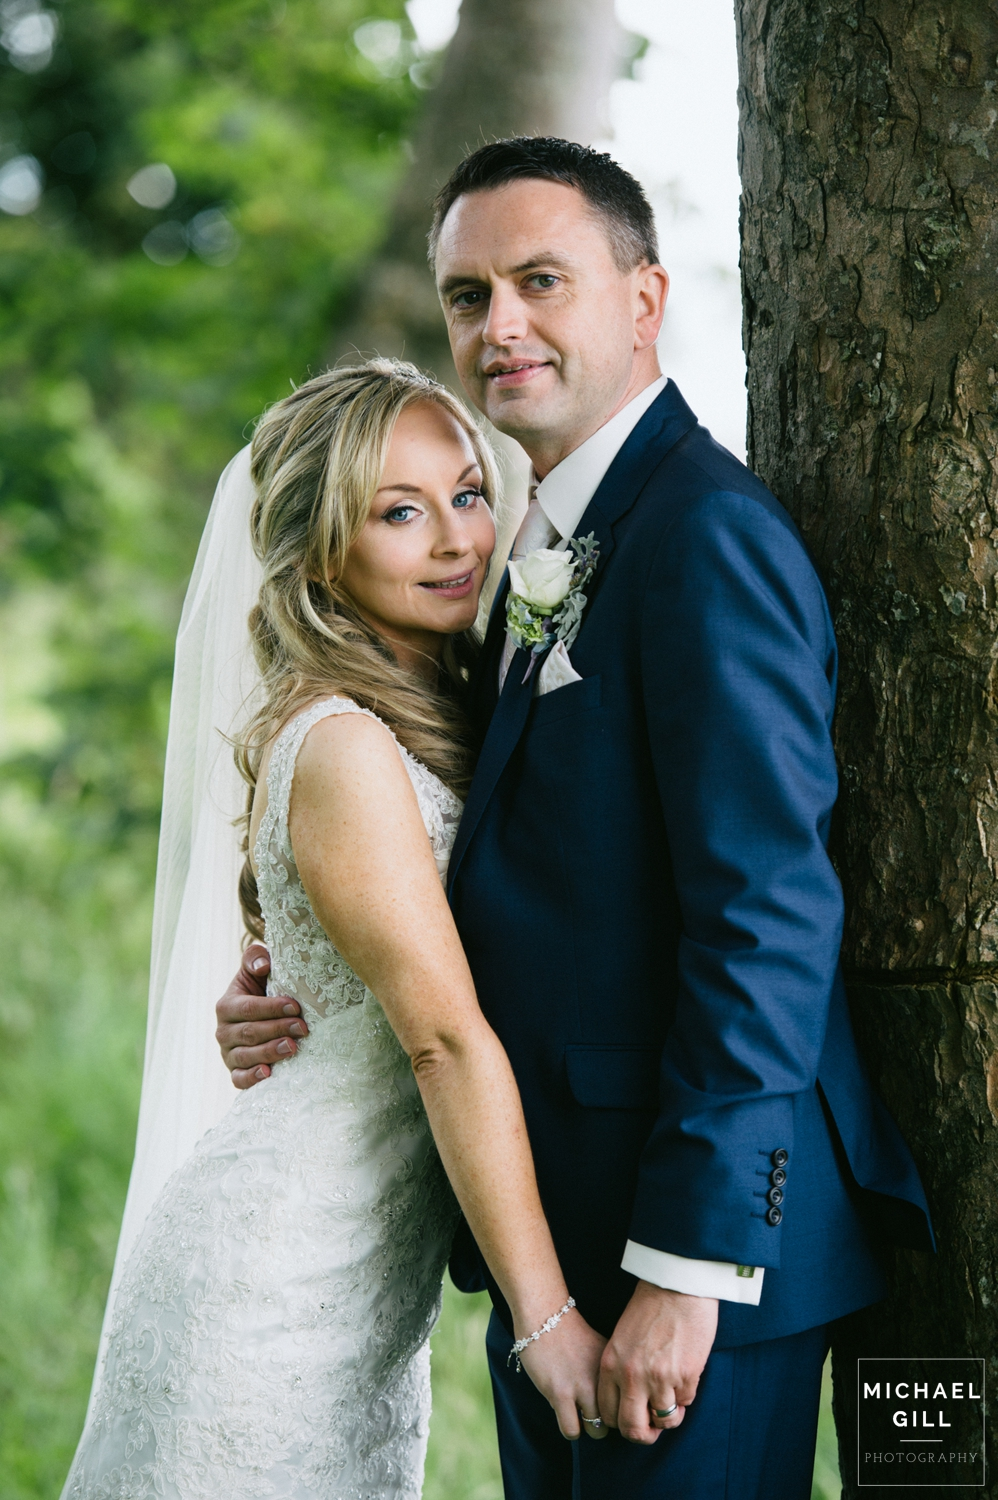 Michael_Gill_Photography_Redcastle_Hotel_ Wedding-3715.jpg